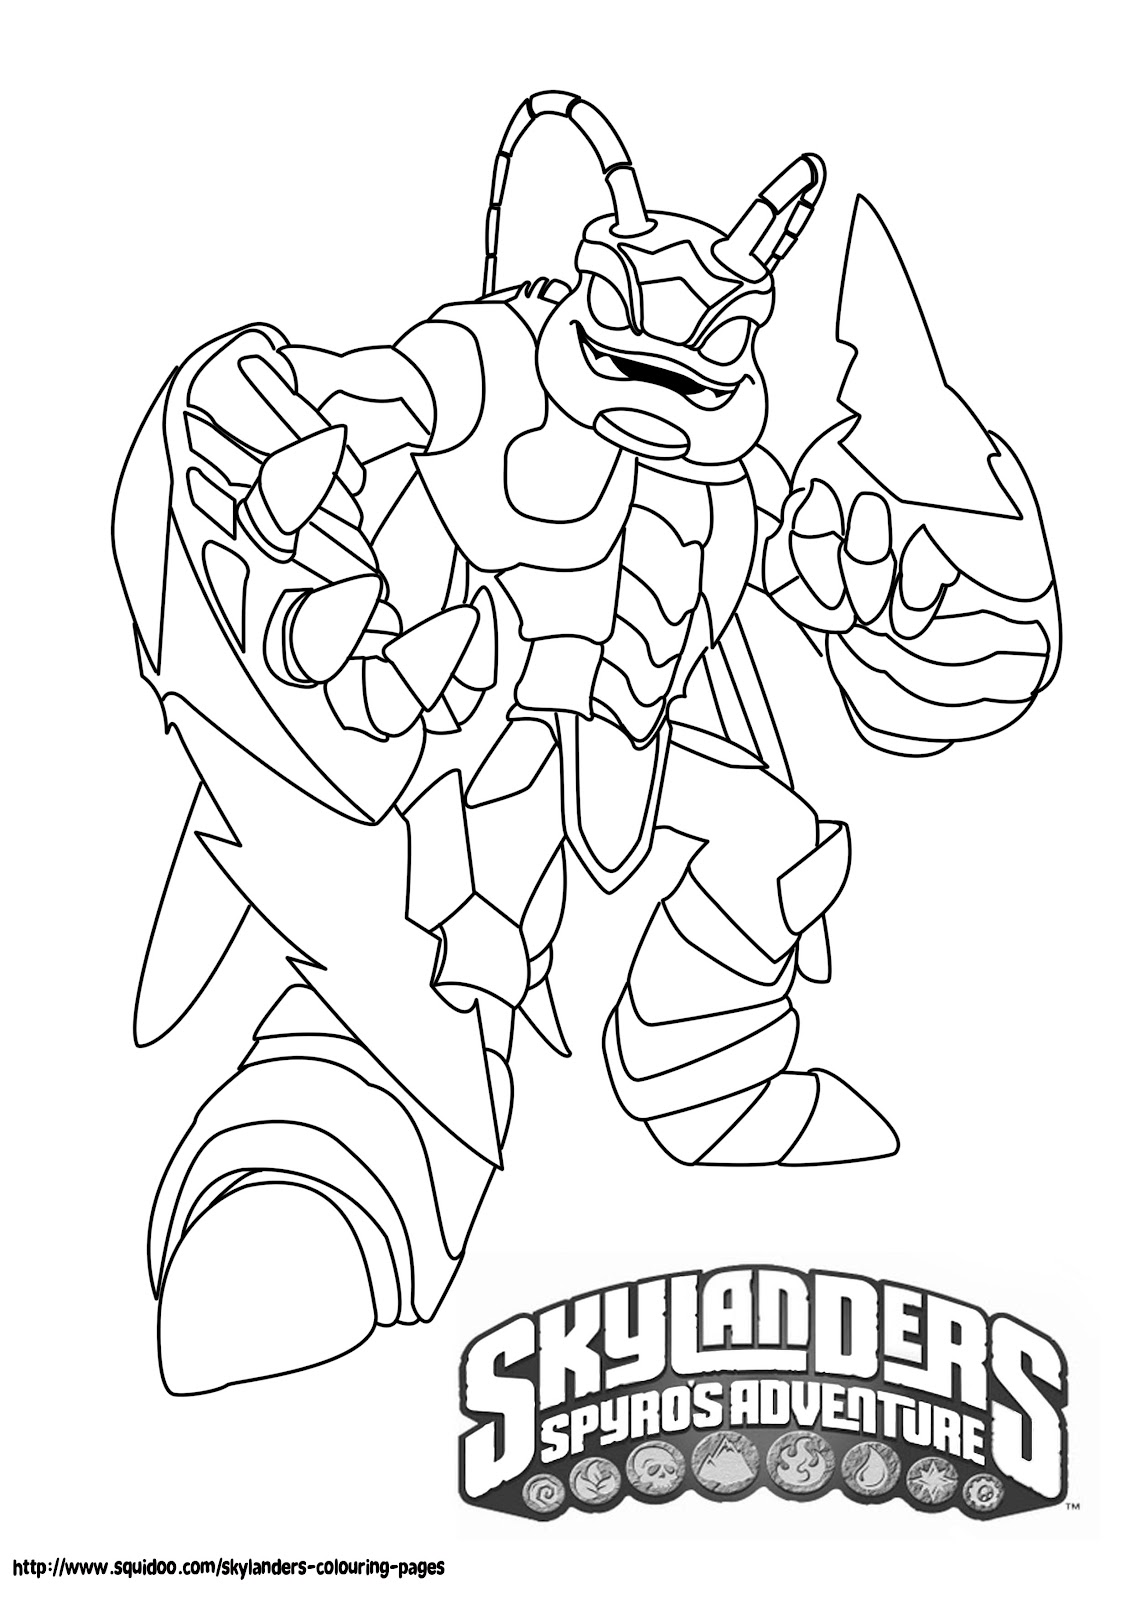 skylanders giants coloring pages | Unique Comics Animation: good skylanders coloring pages